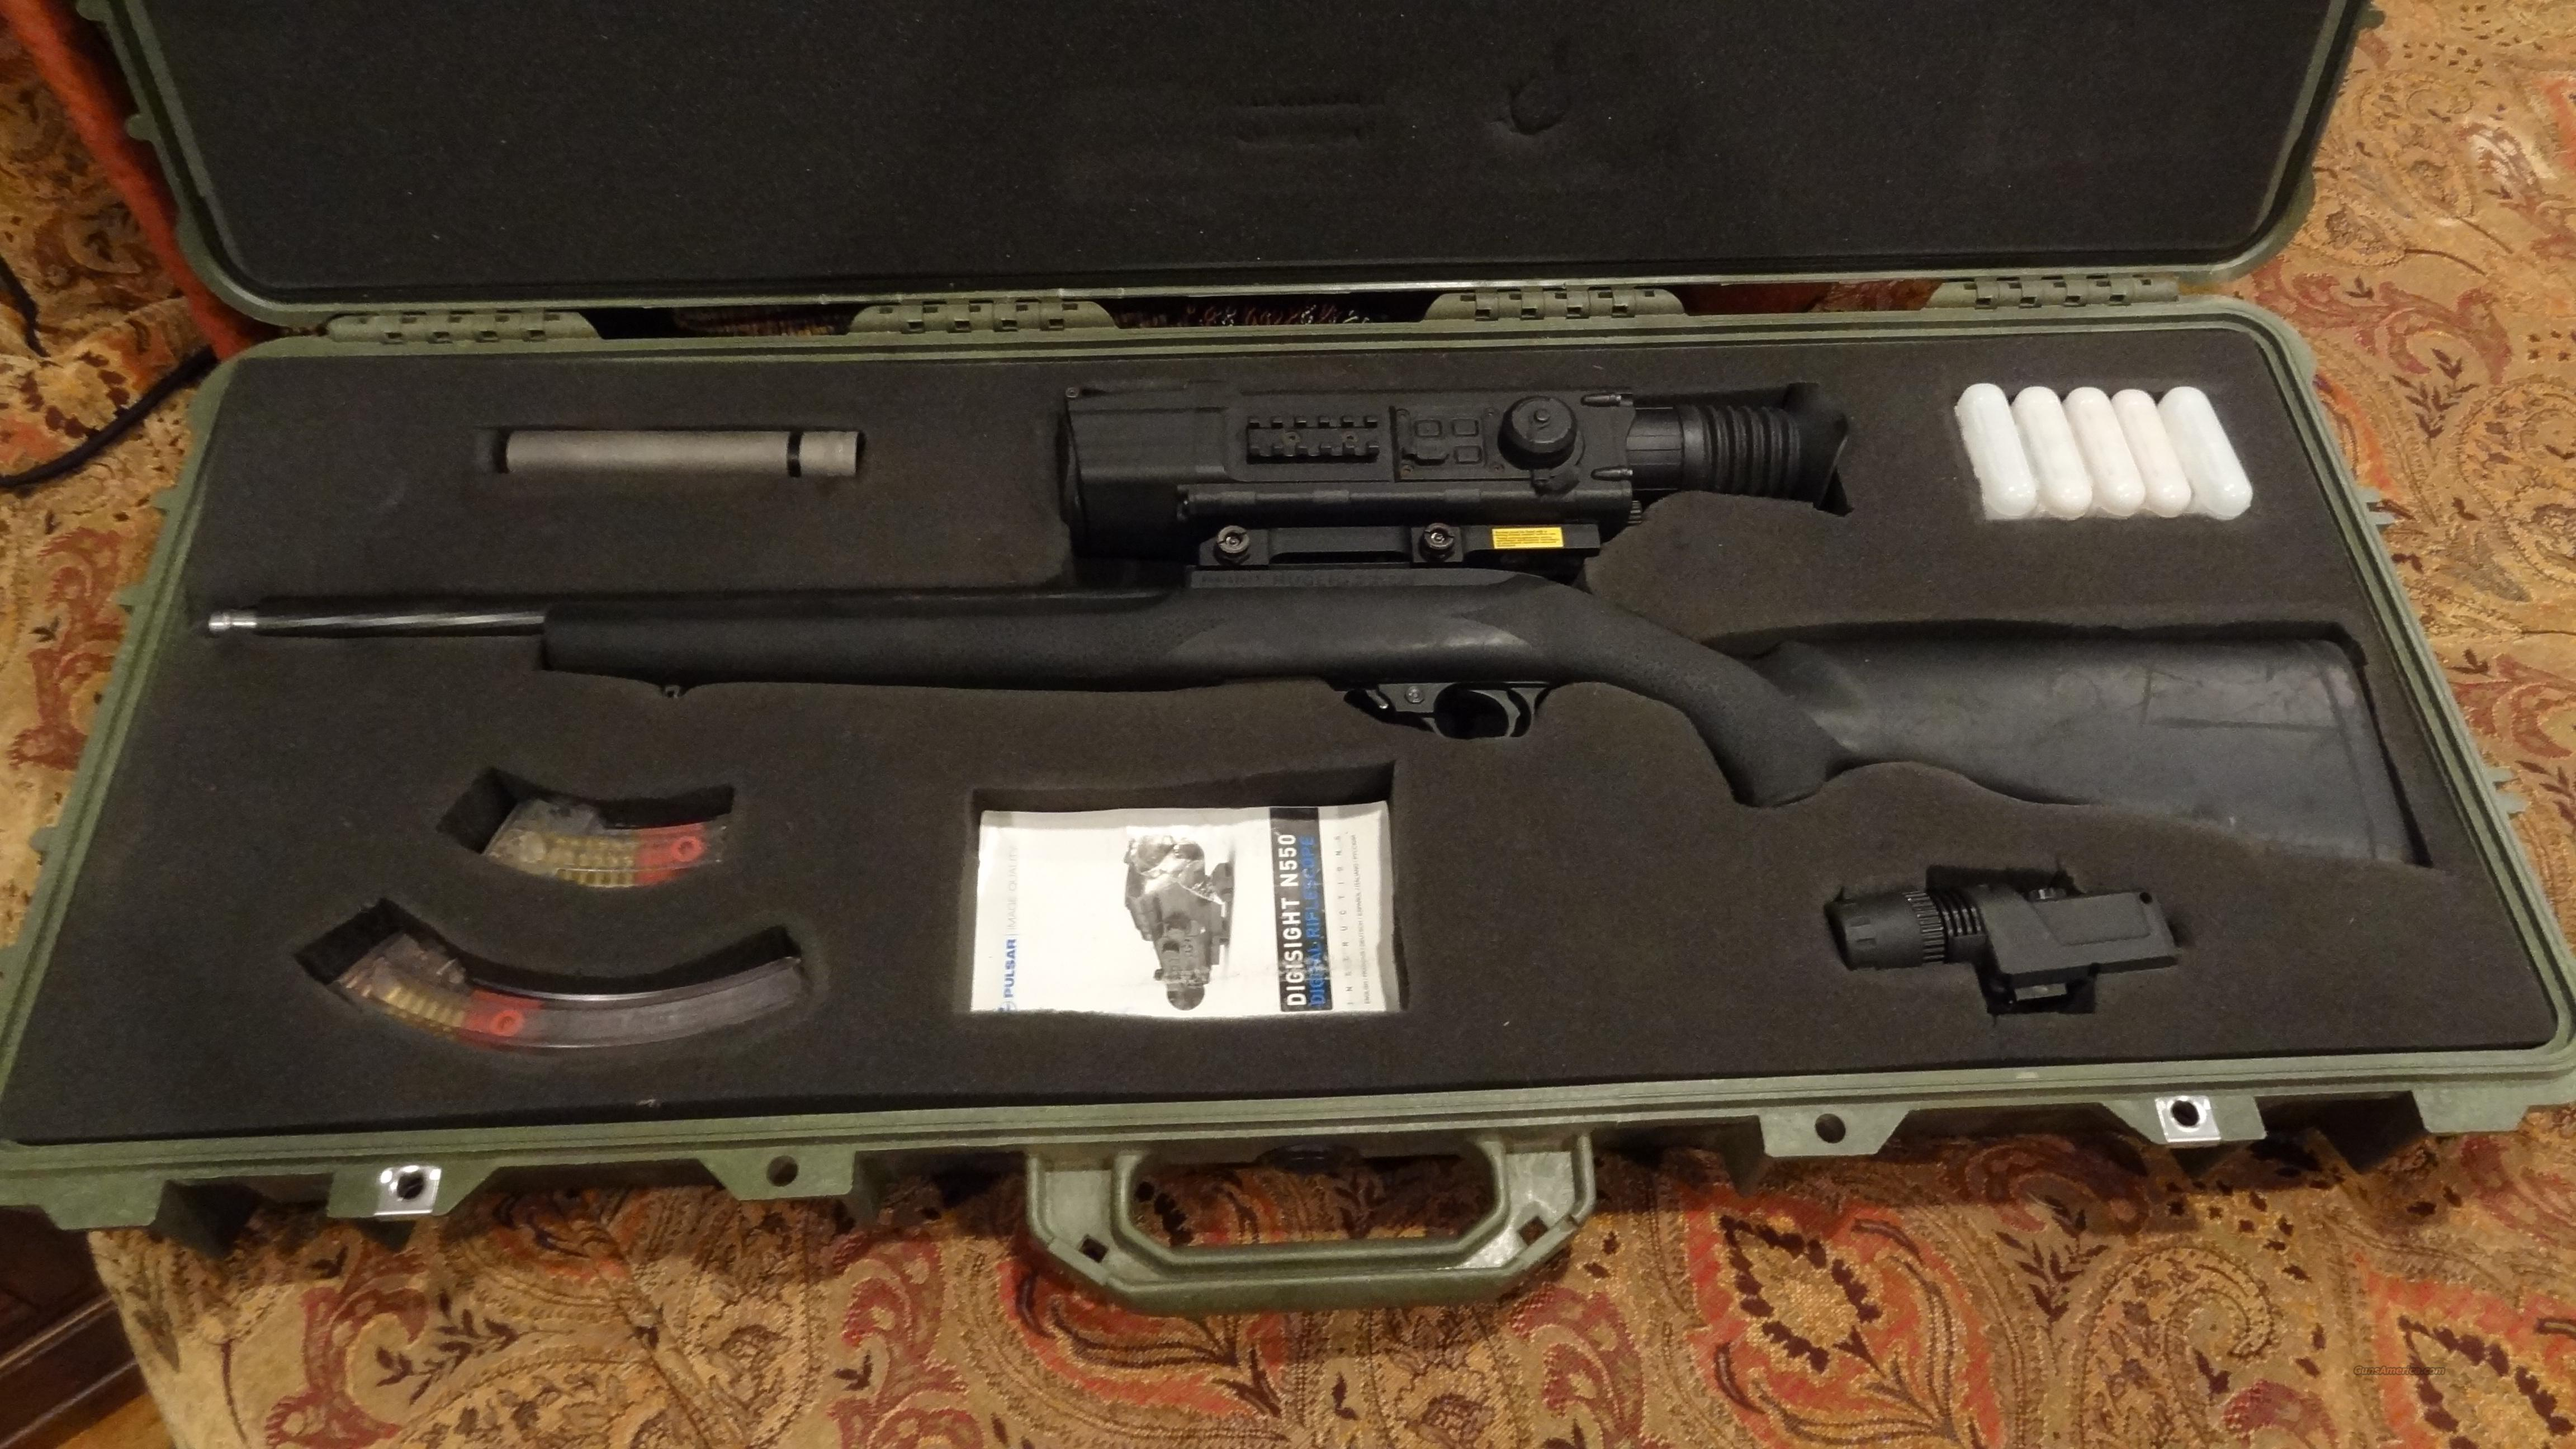 Ruger hammer forged with night vision  Guns > Rifles > Ruger Rifles > 10-22